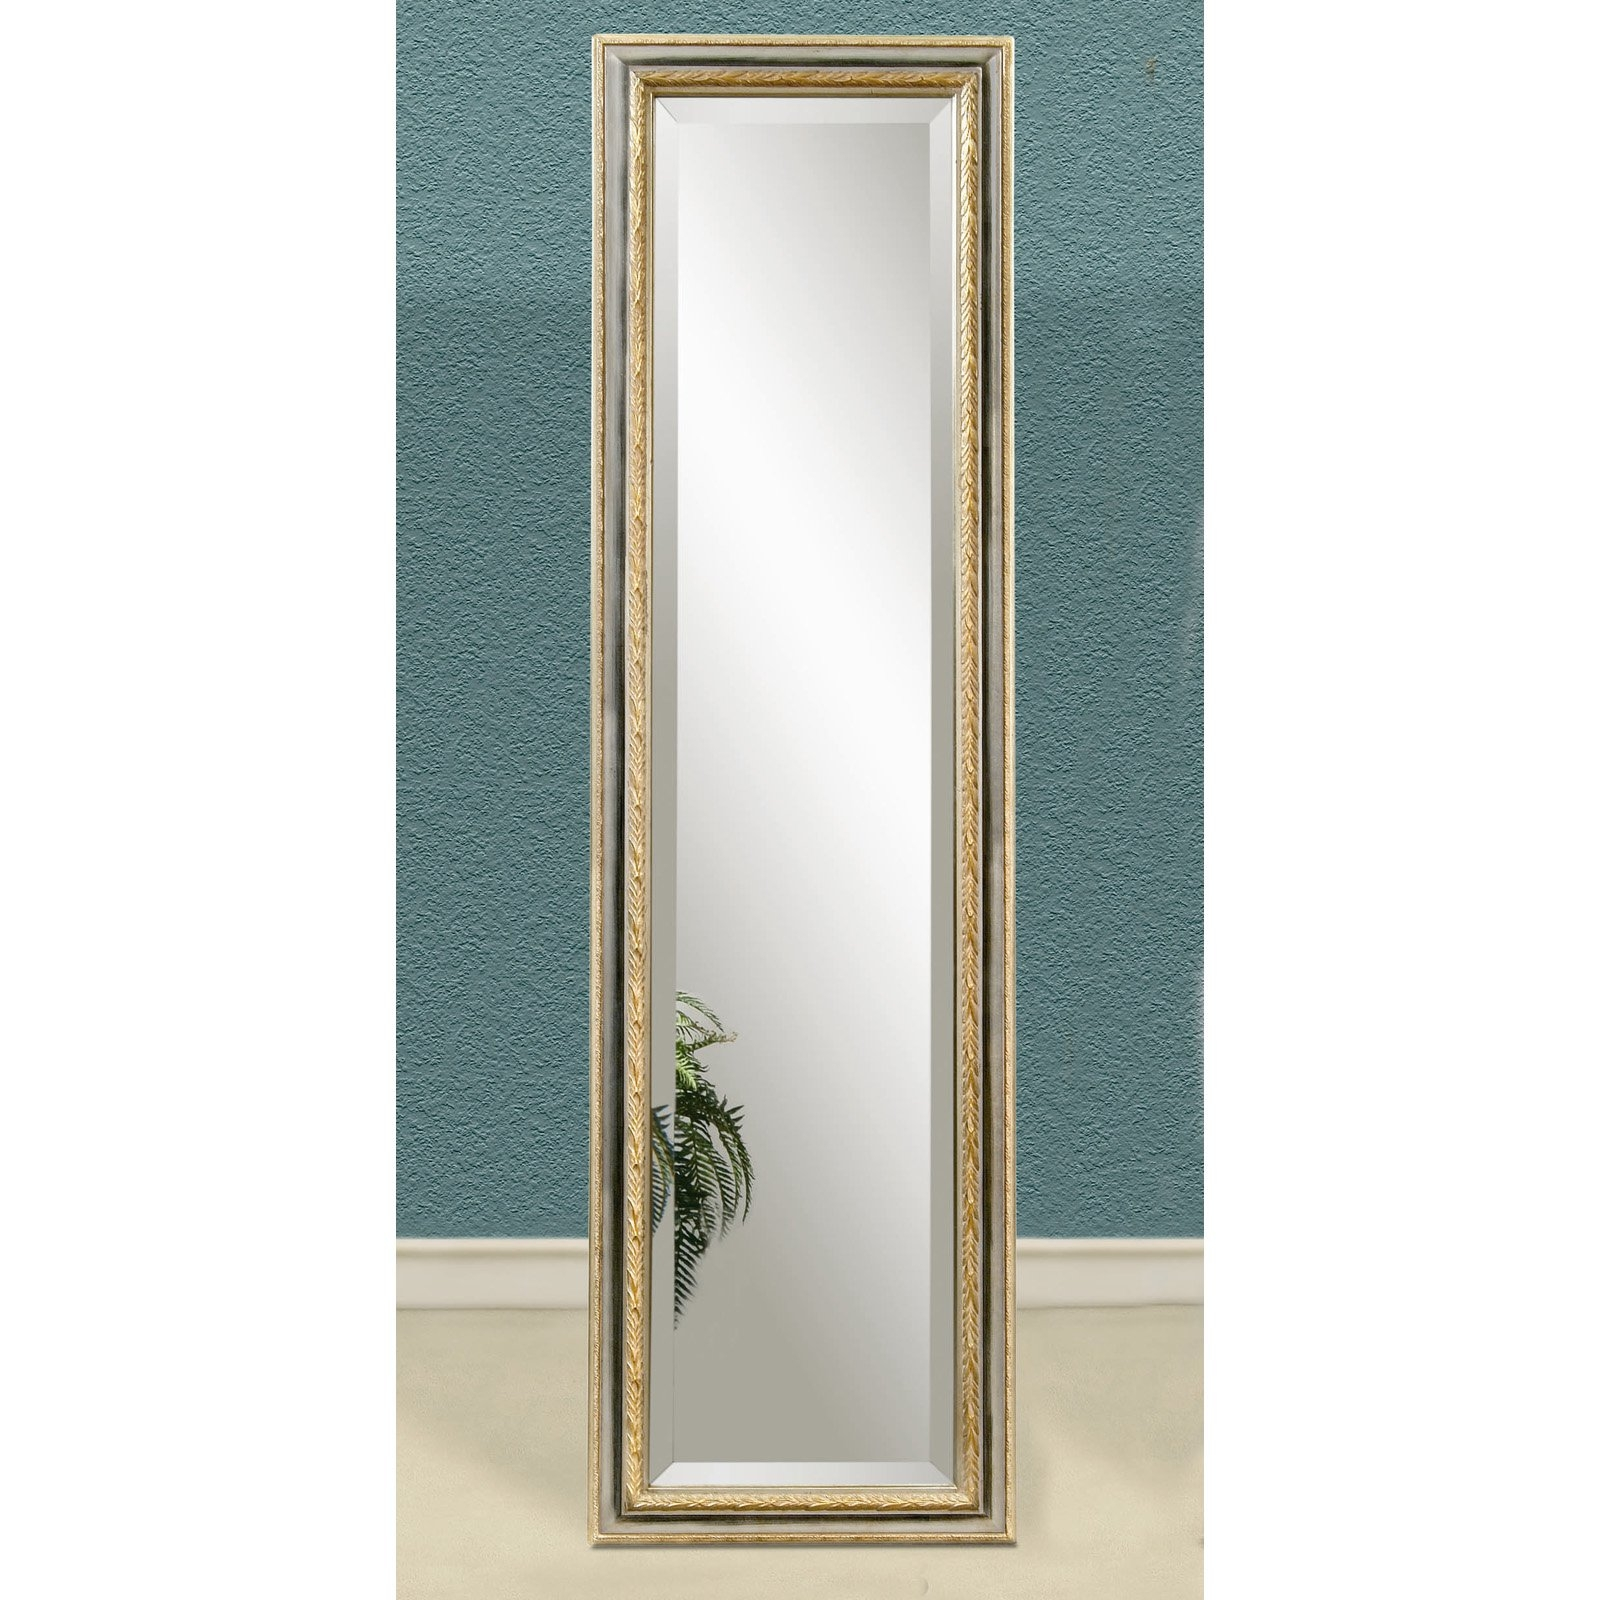 Featured Image of Full Length Gold Mirror